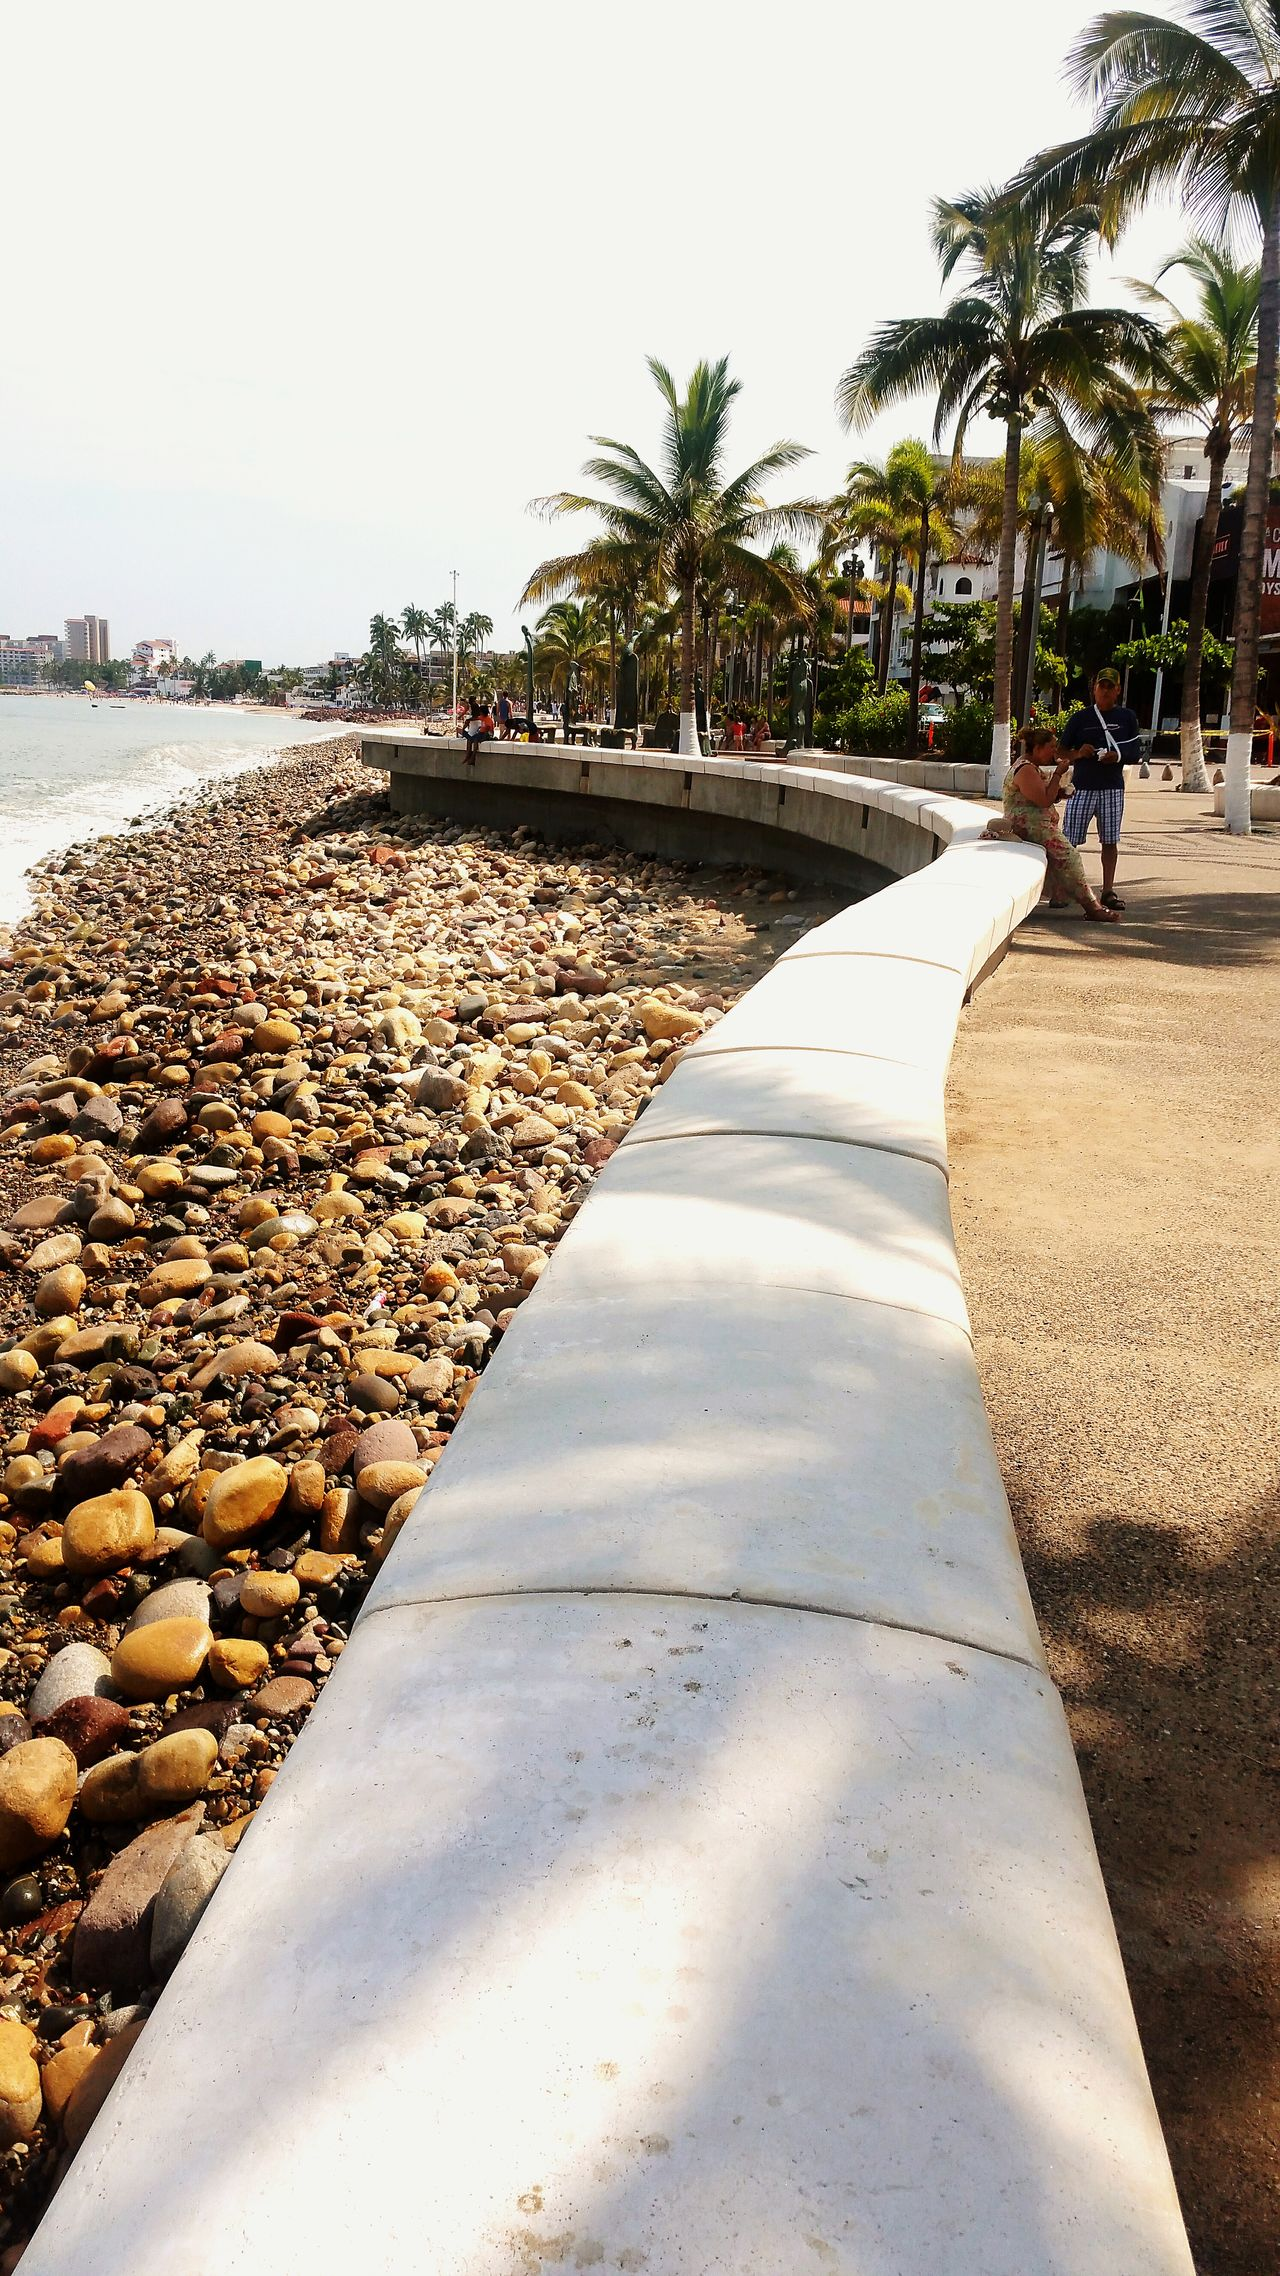 Puertovallartajalisco Malecón, Puerto Vallarta. Tree Shadow Palm Tree Empty Sunlight Tranquil Scene Relaxation Park - Man Made Space High Angle View Playadelosmuertos Architecture Travel Destinations Majestic